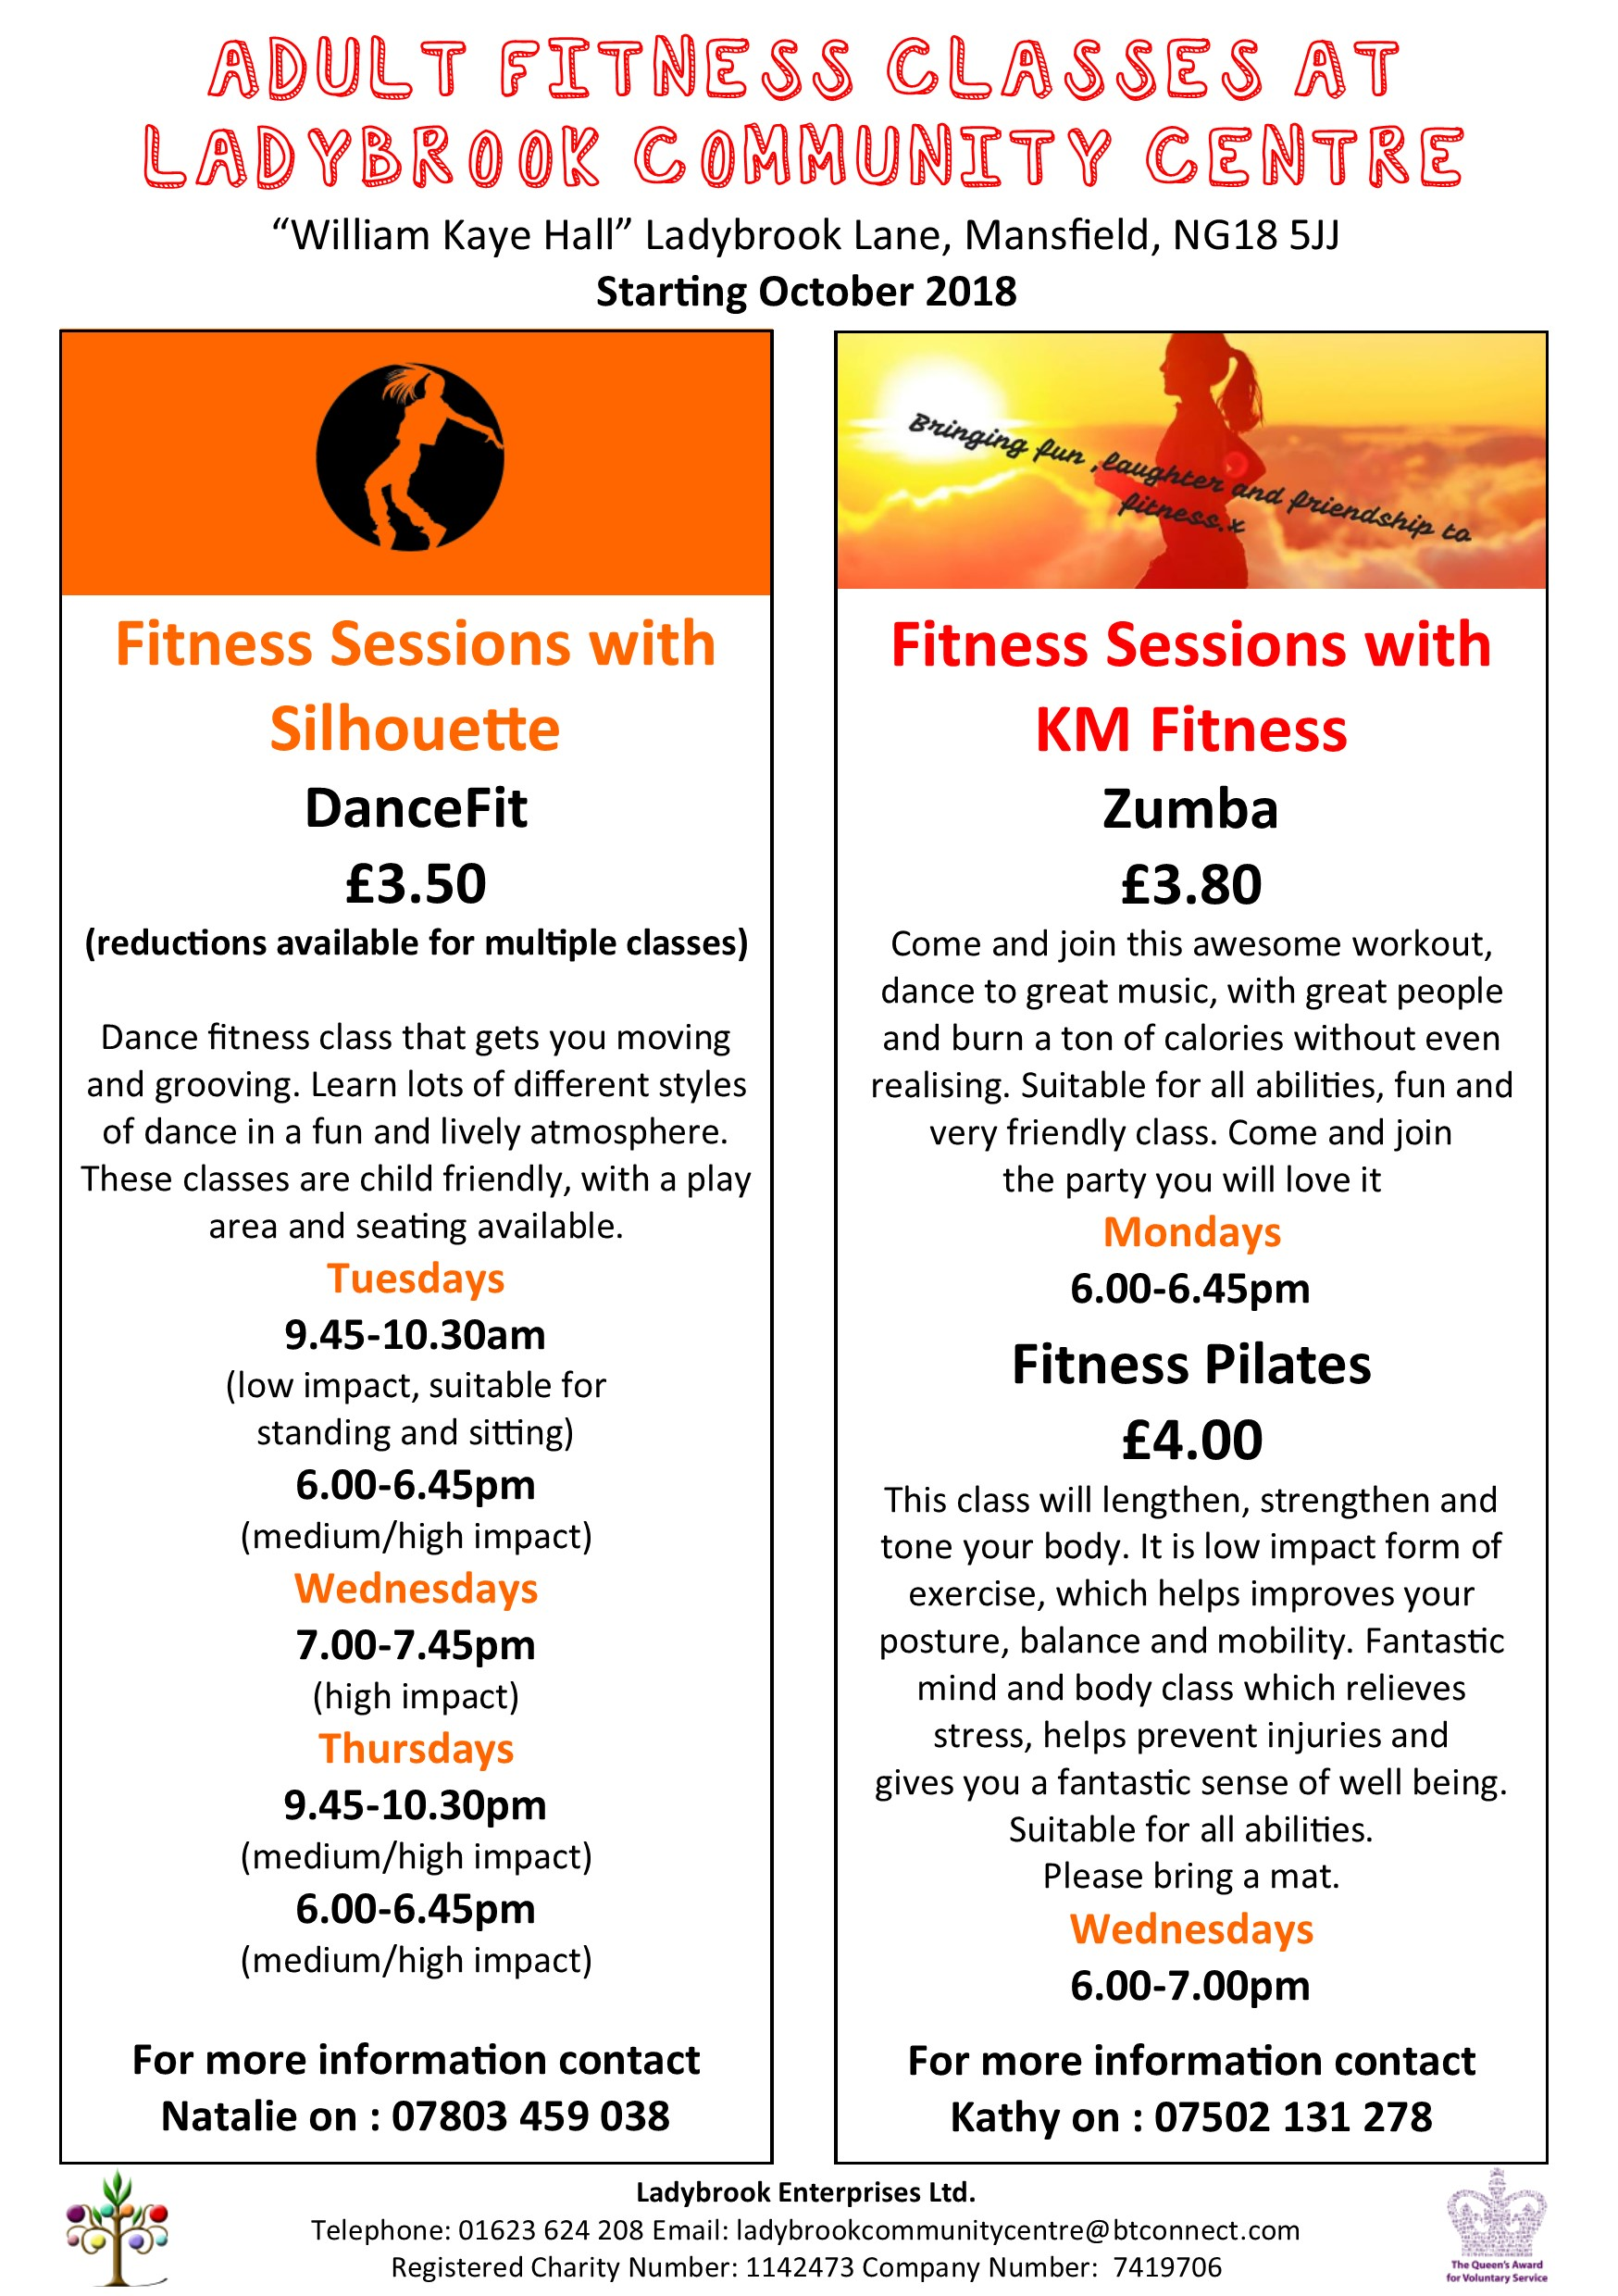 adult fitness info october 18